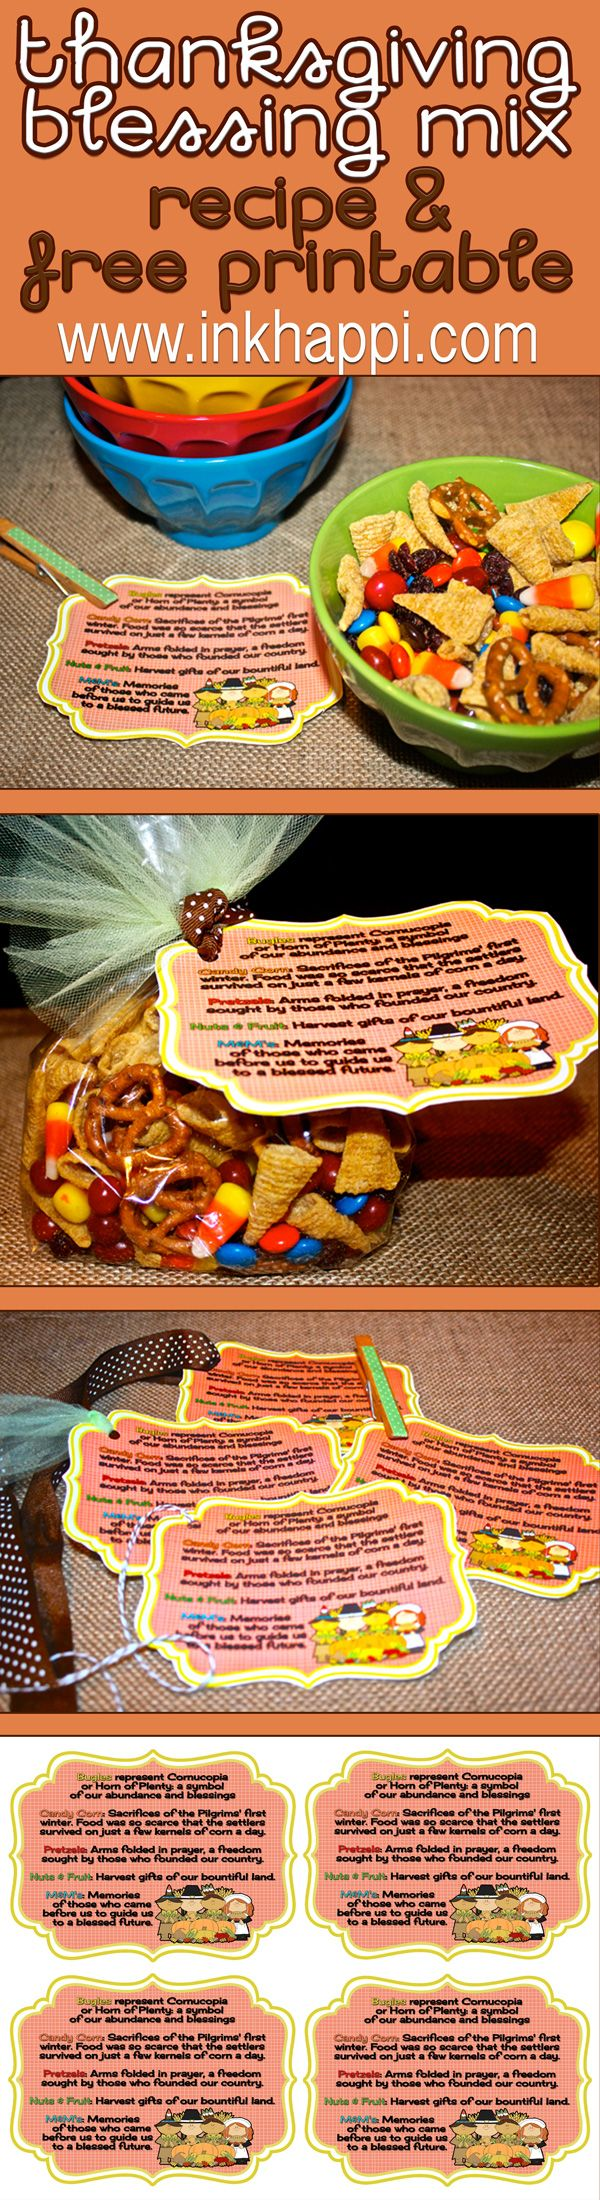 Thanksgiving Blessing Mix. A yummy snack that has meaning. Each item represents part of Thanksgiving. recipe and free printable tags for great gift or display!